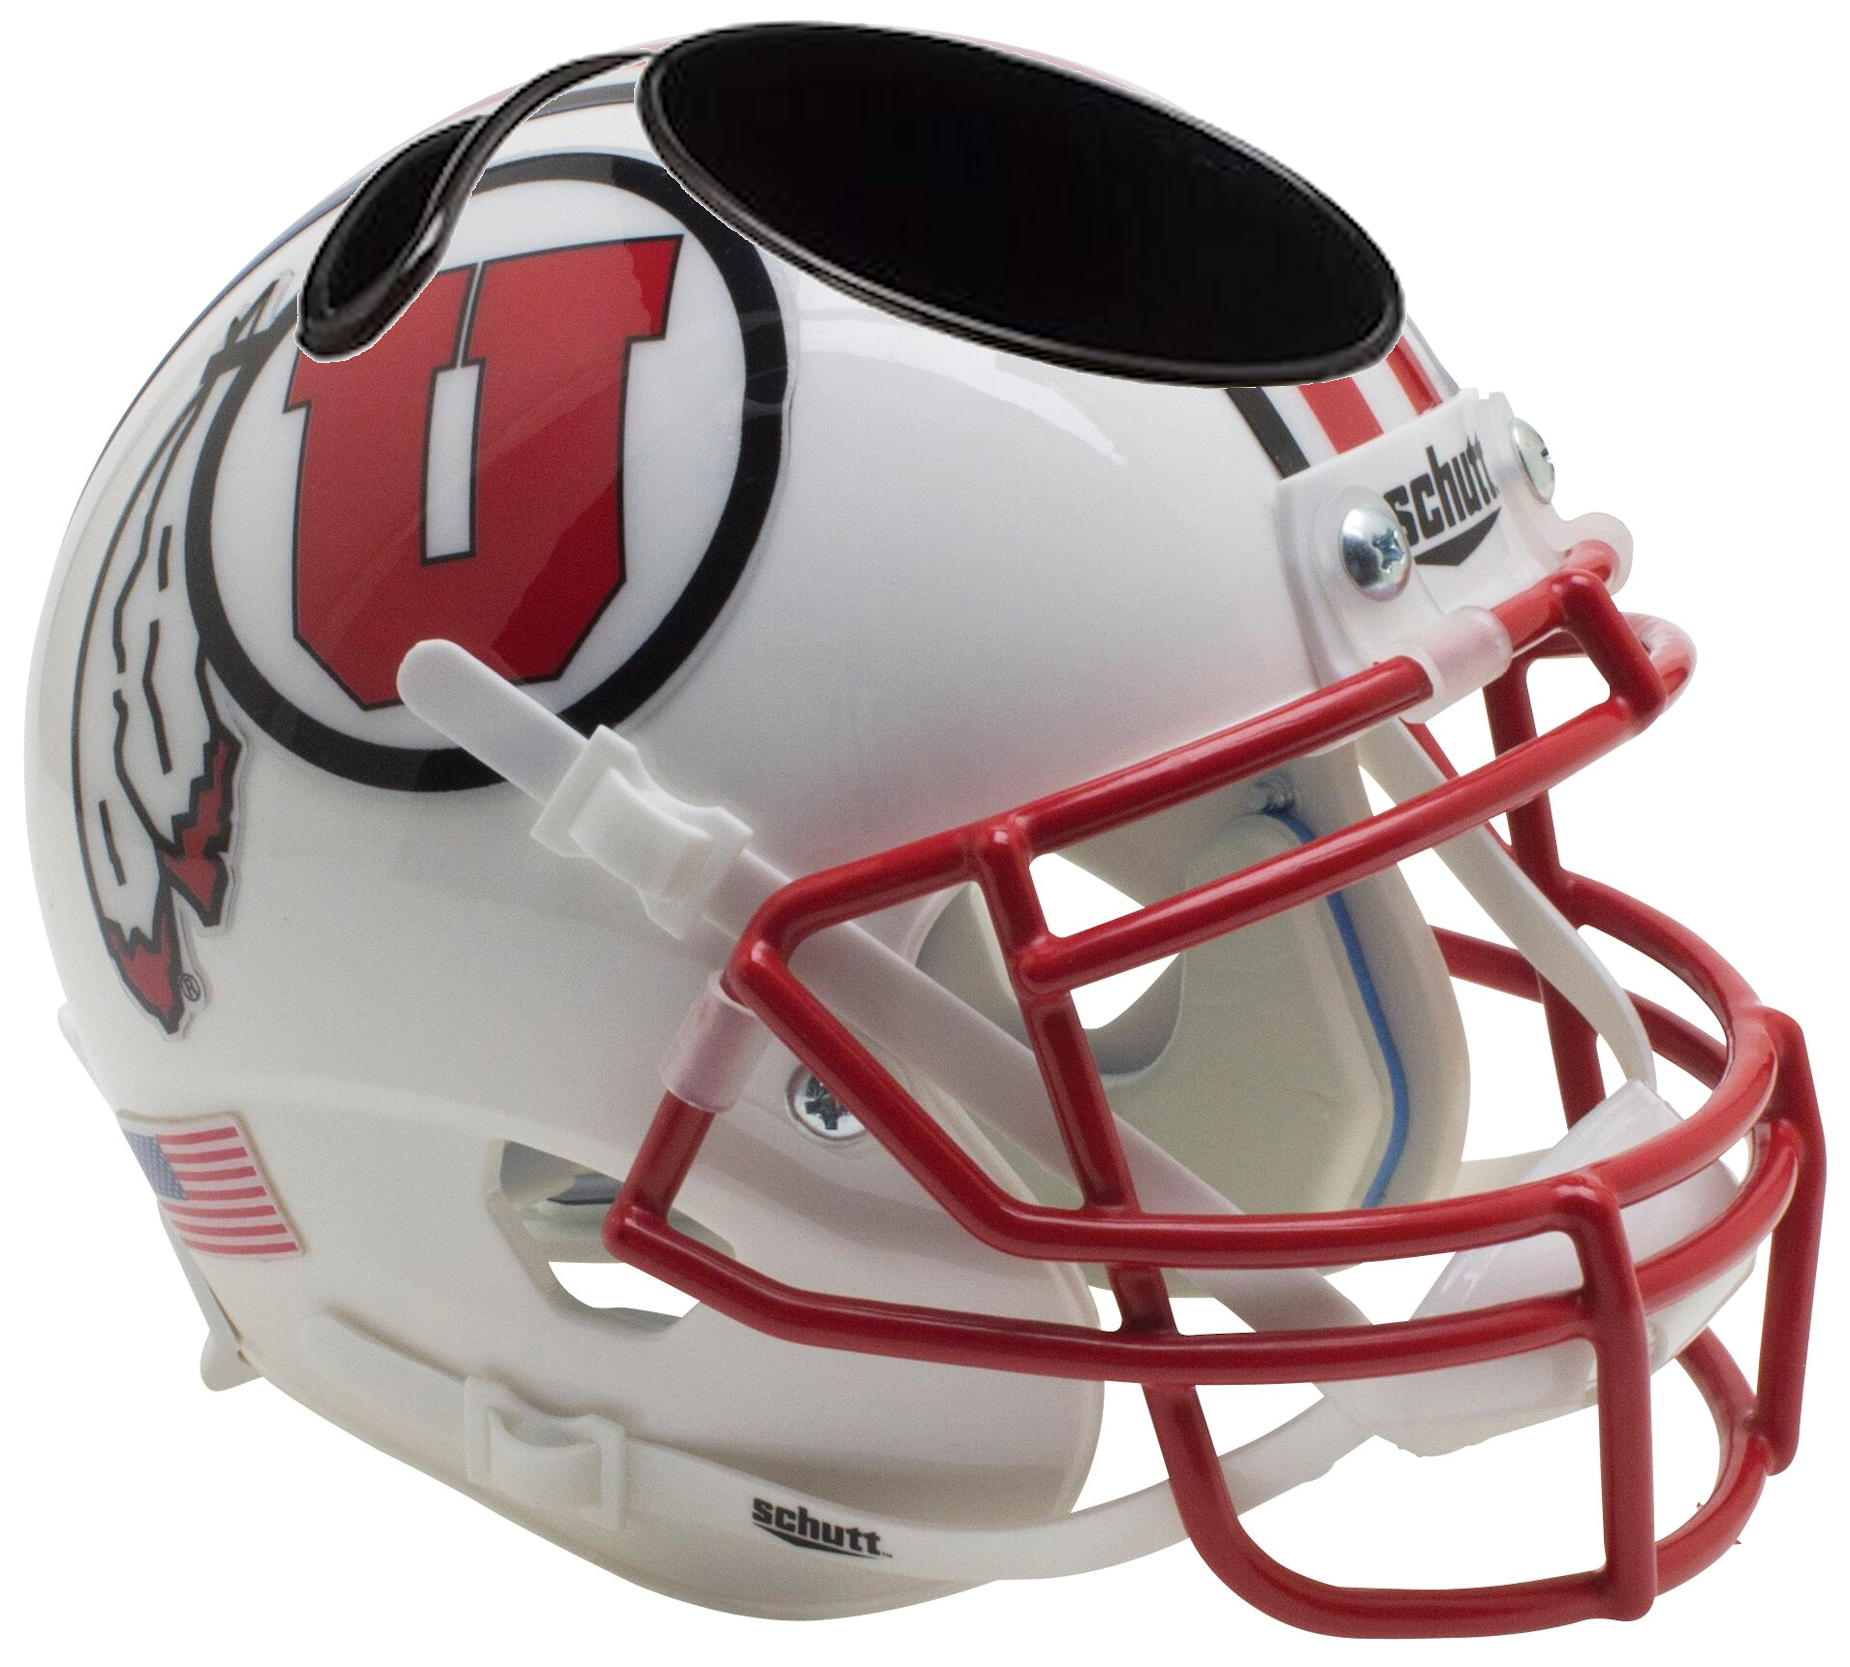 Utah Utes Miniature Football Helmet Desk Caddy <B>2016 White</B>